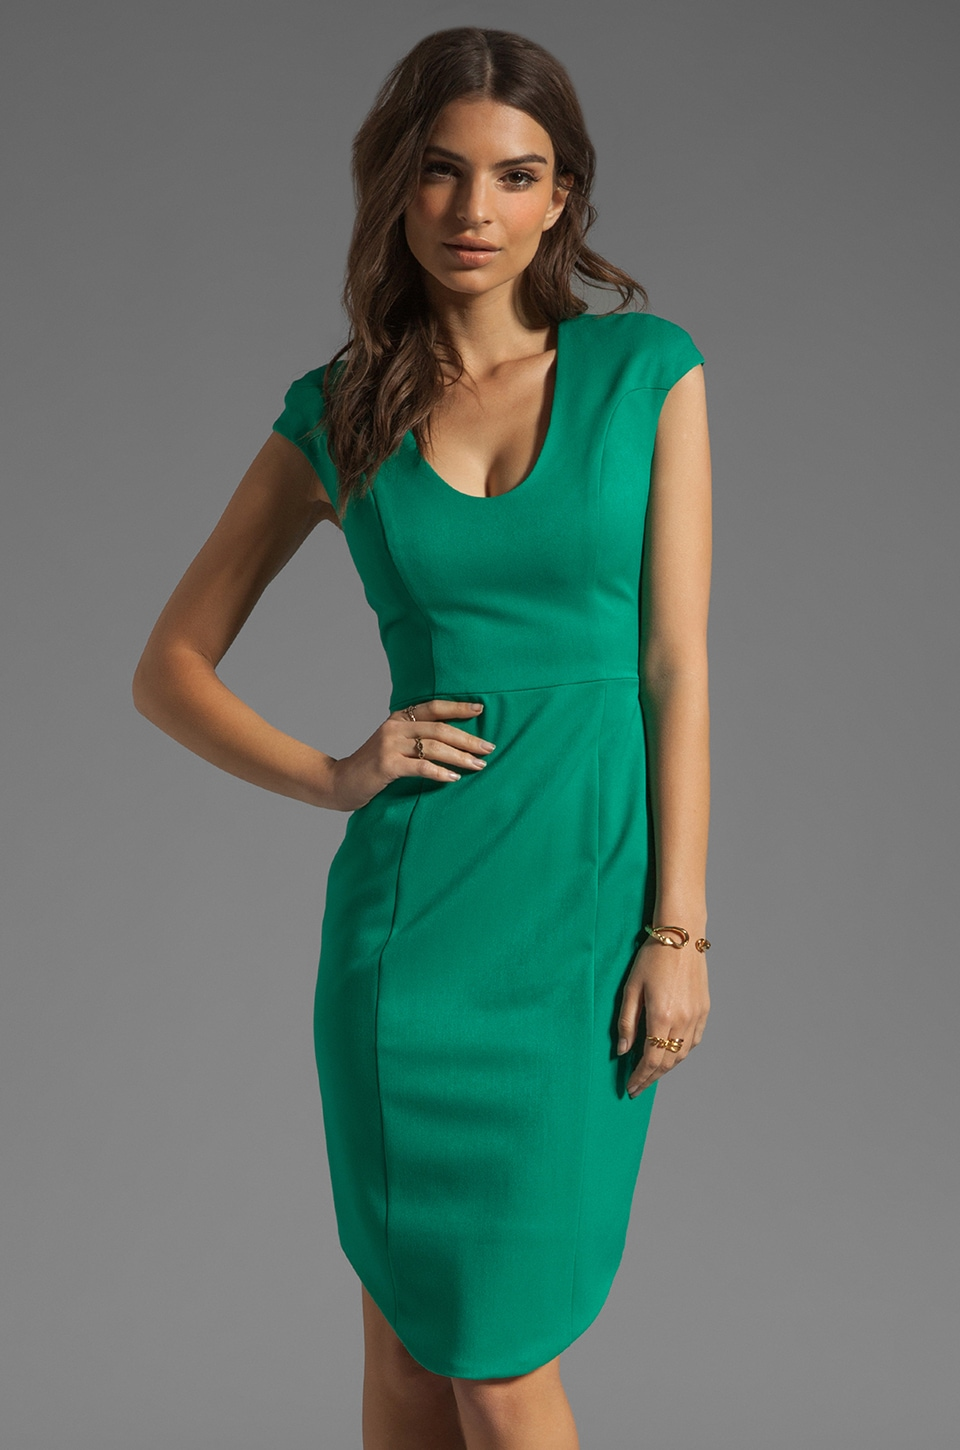 Black Halo Demetrio Dress in Shamrock